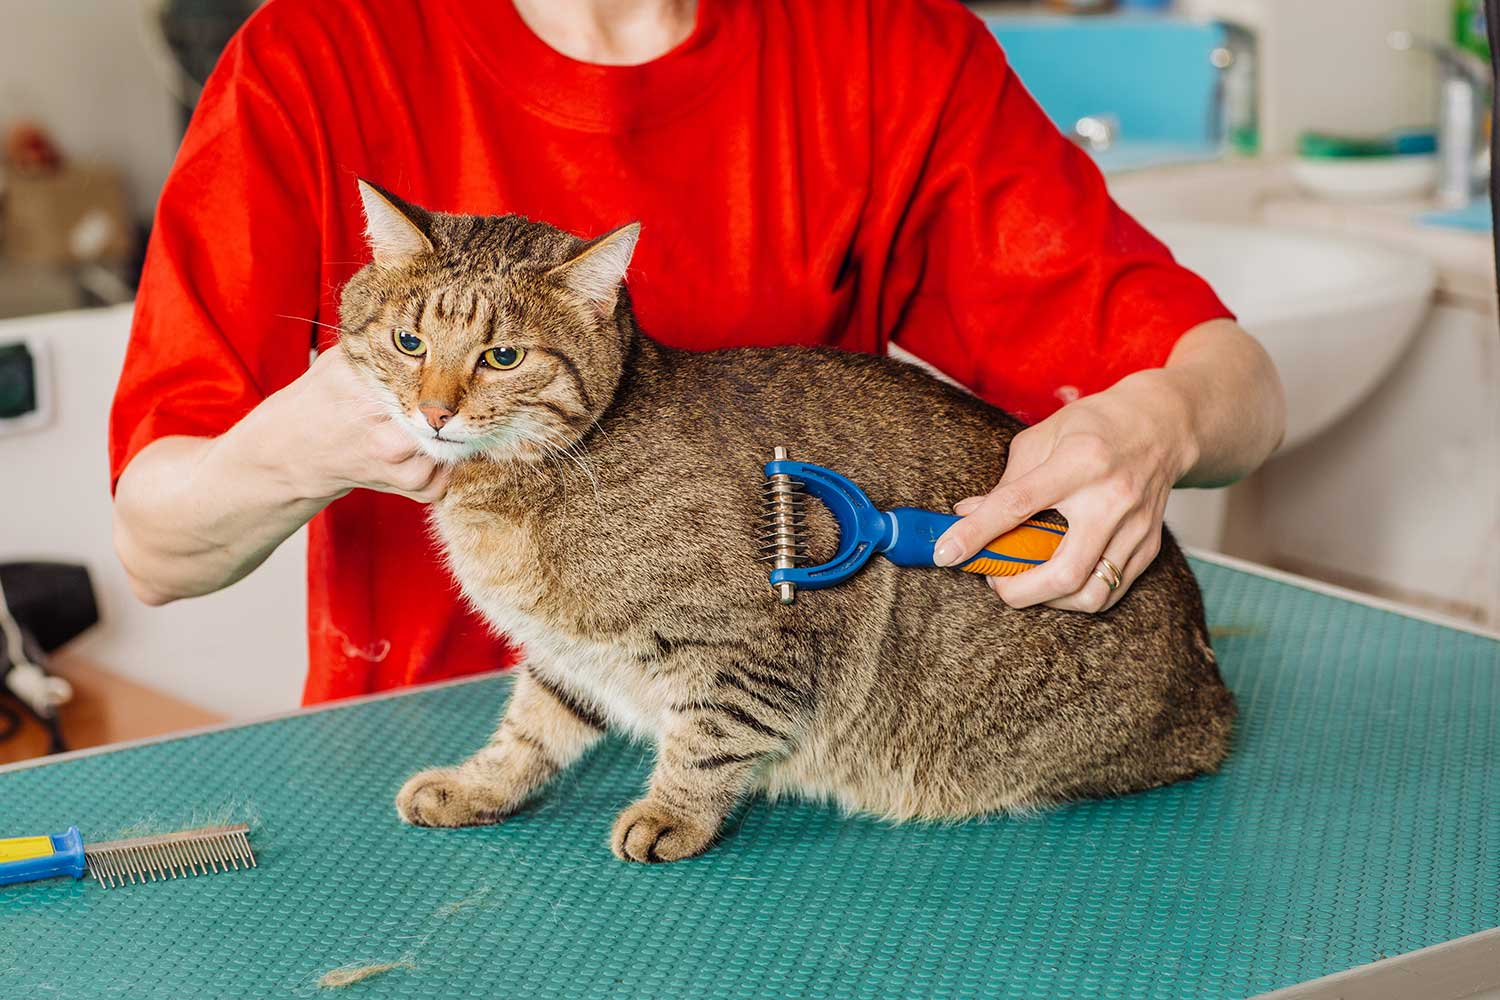 Veterinarian grooming cat with tool for shedding hair